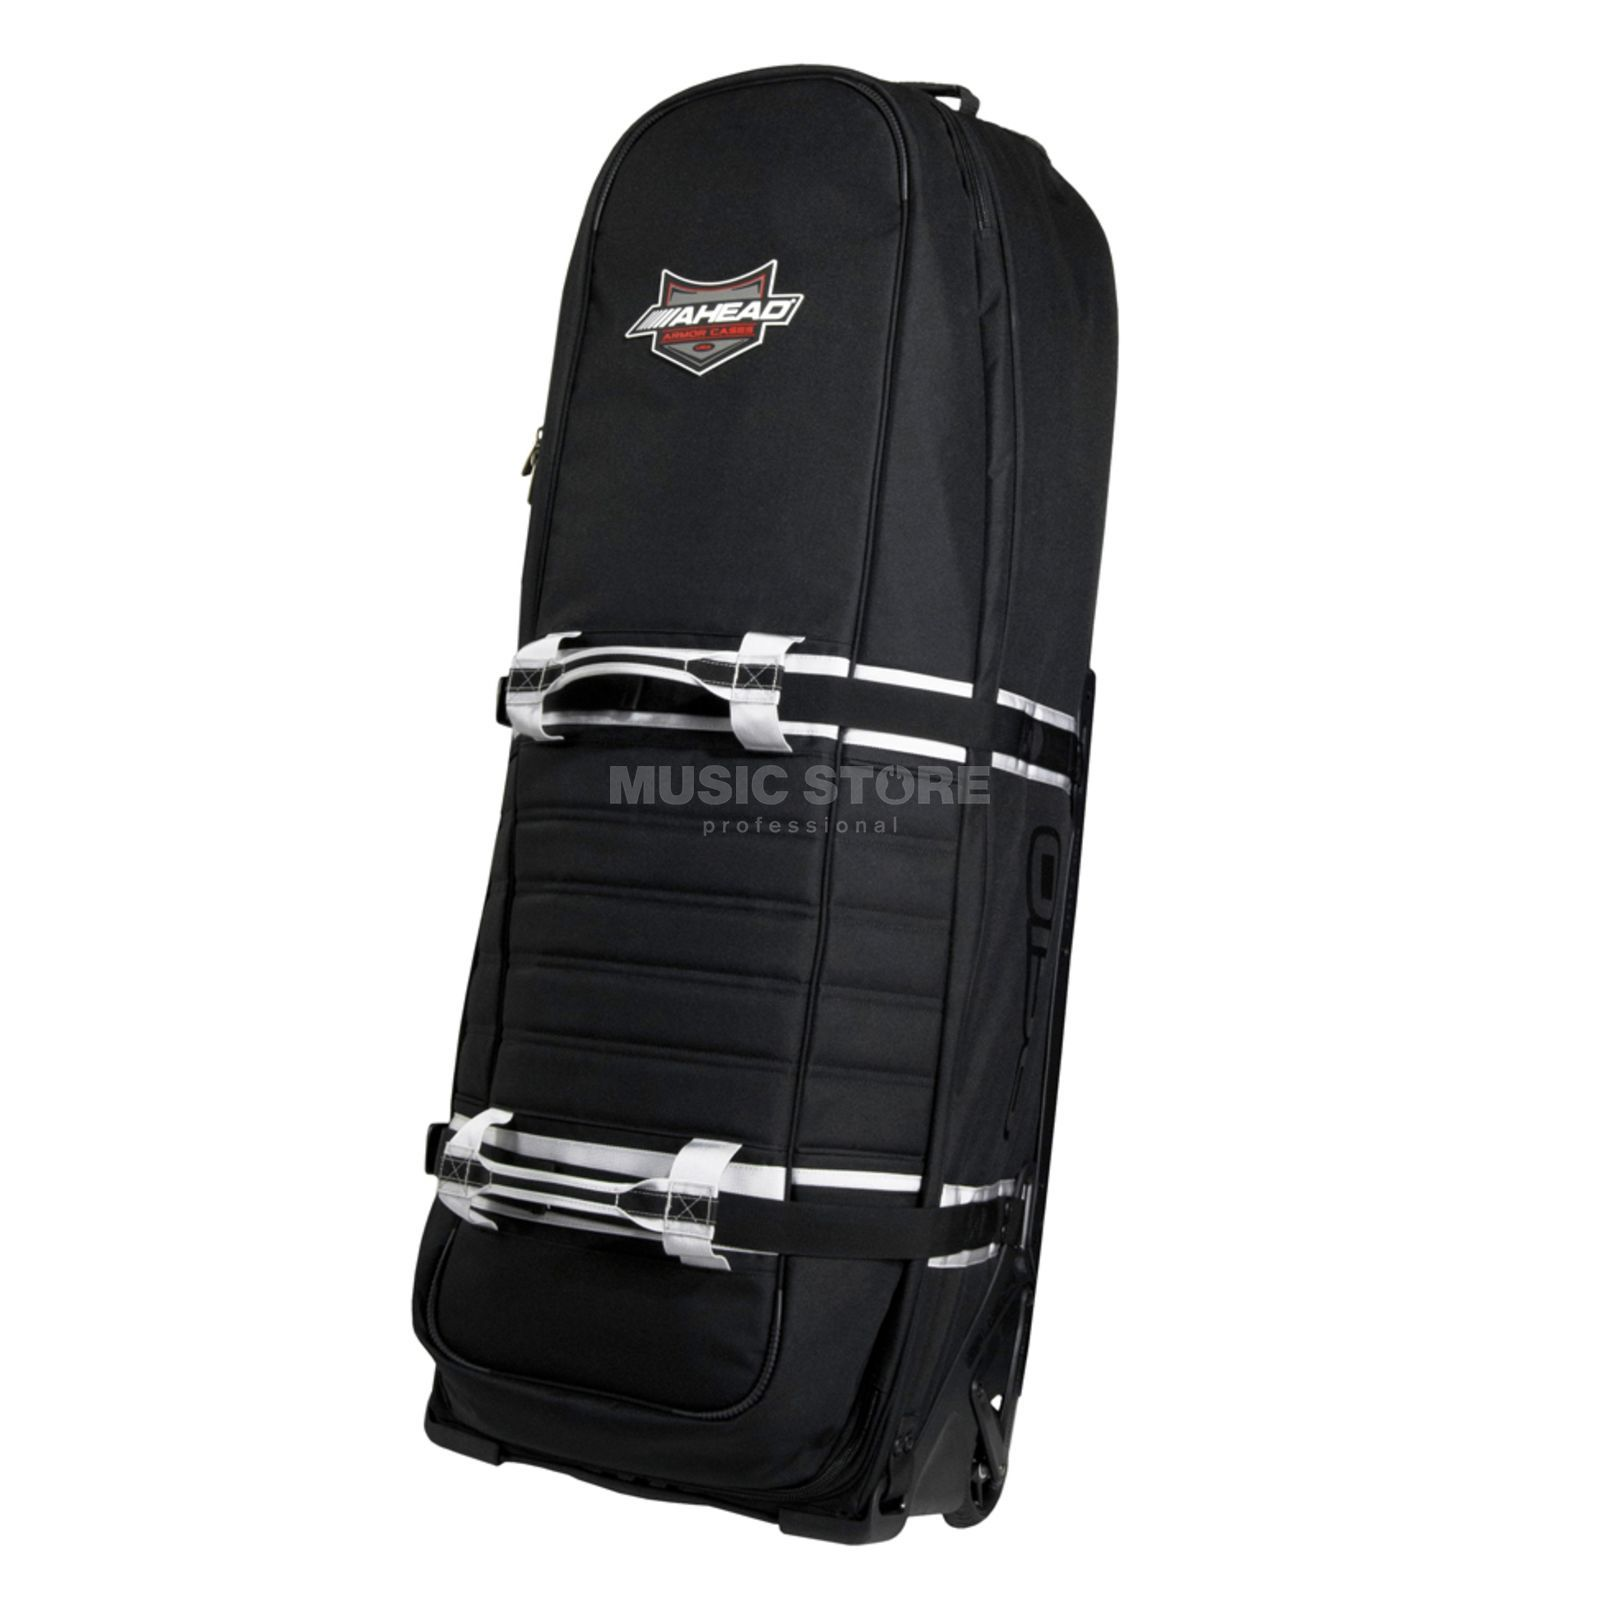 "Ahead Armor Cases Hardware Bag 5048W, w/wheels, 48""x16""x14"", SLED Produktbild"